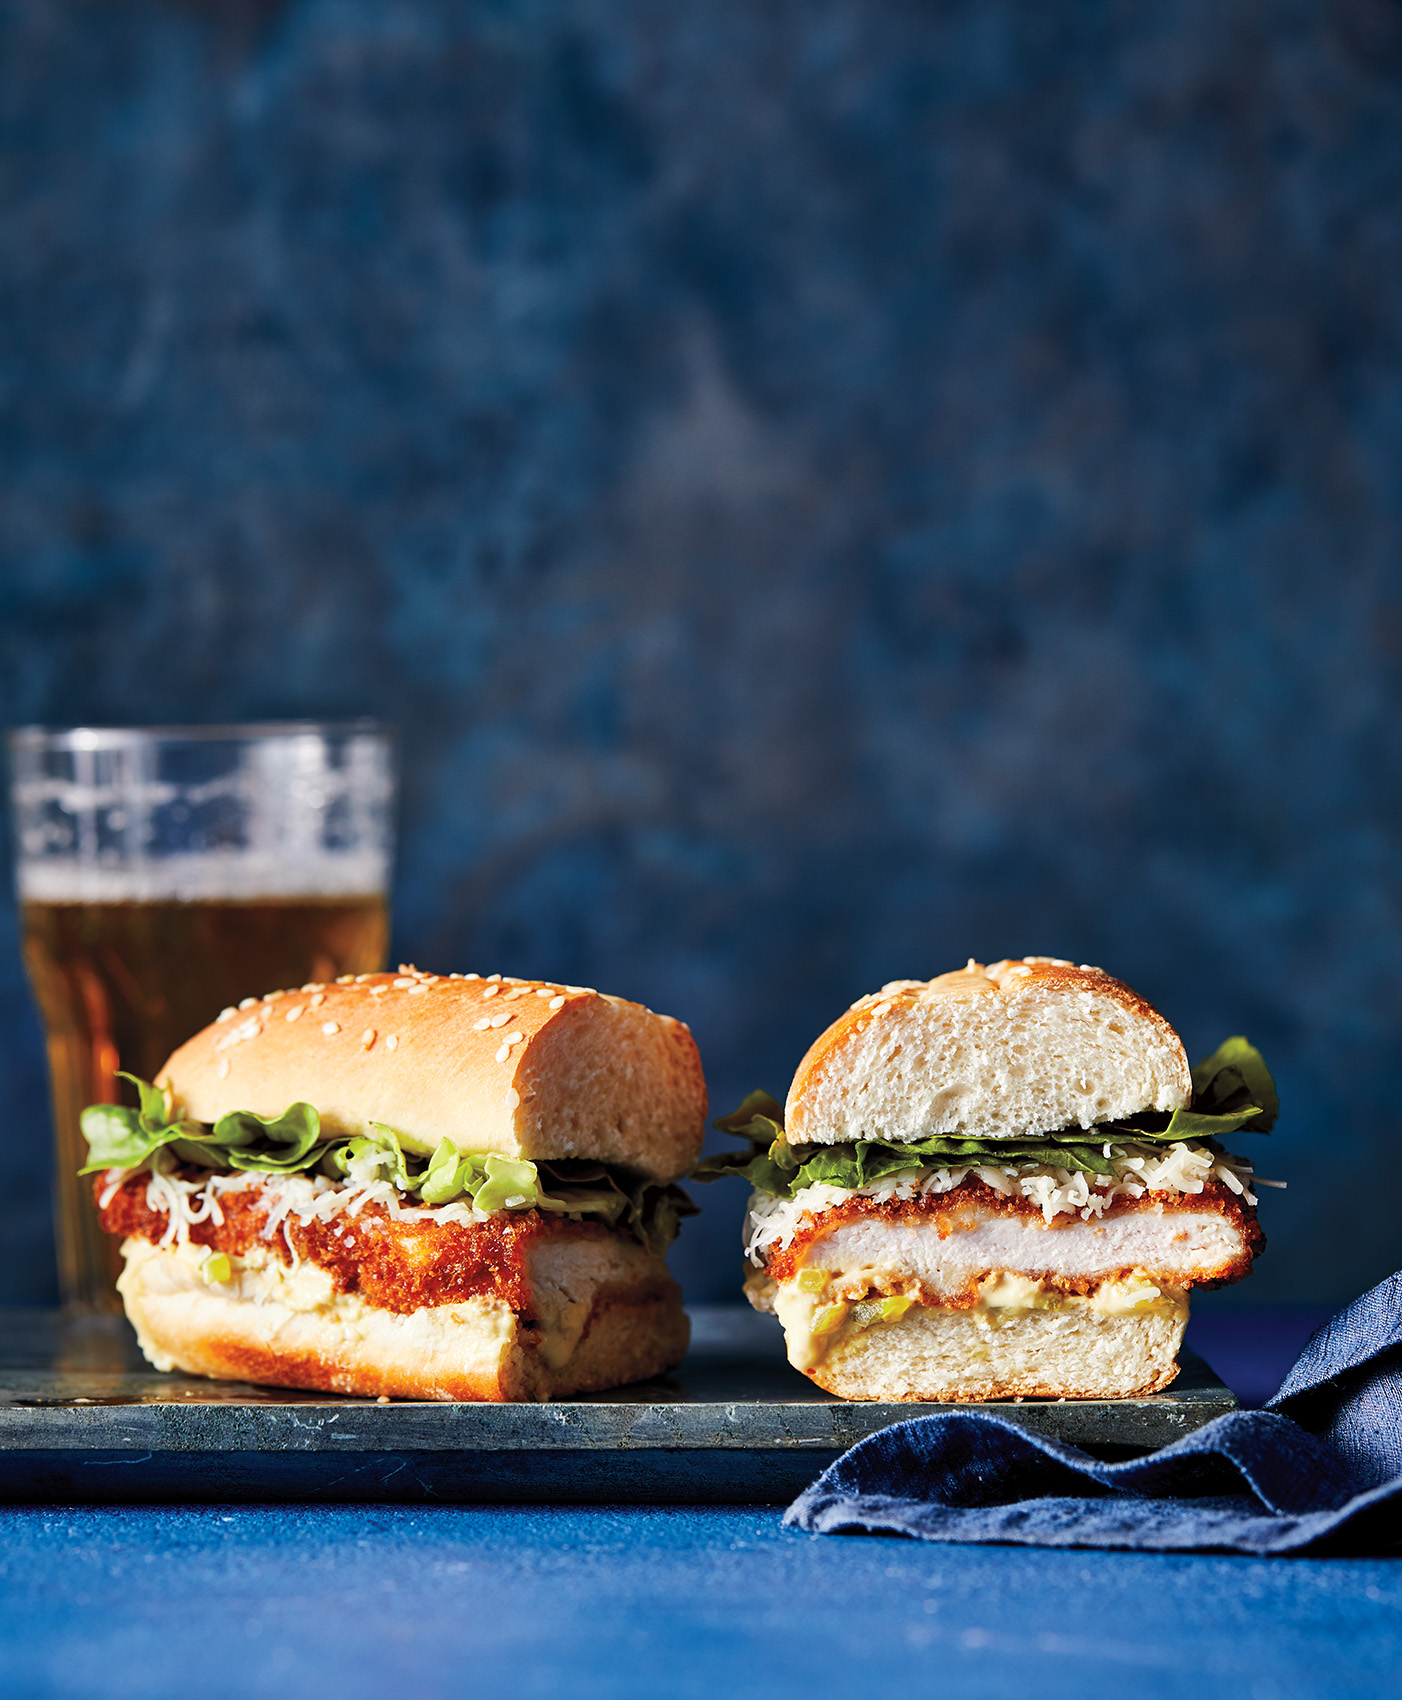 Crispy Chicken-And-Cheddar Sandwich With Pickle Dijon